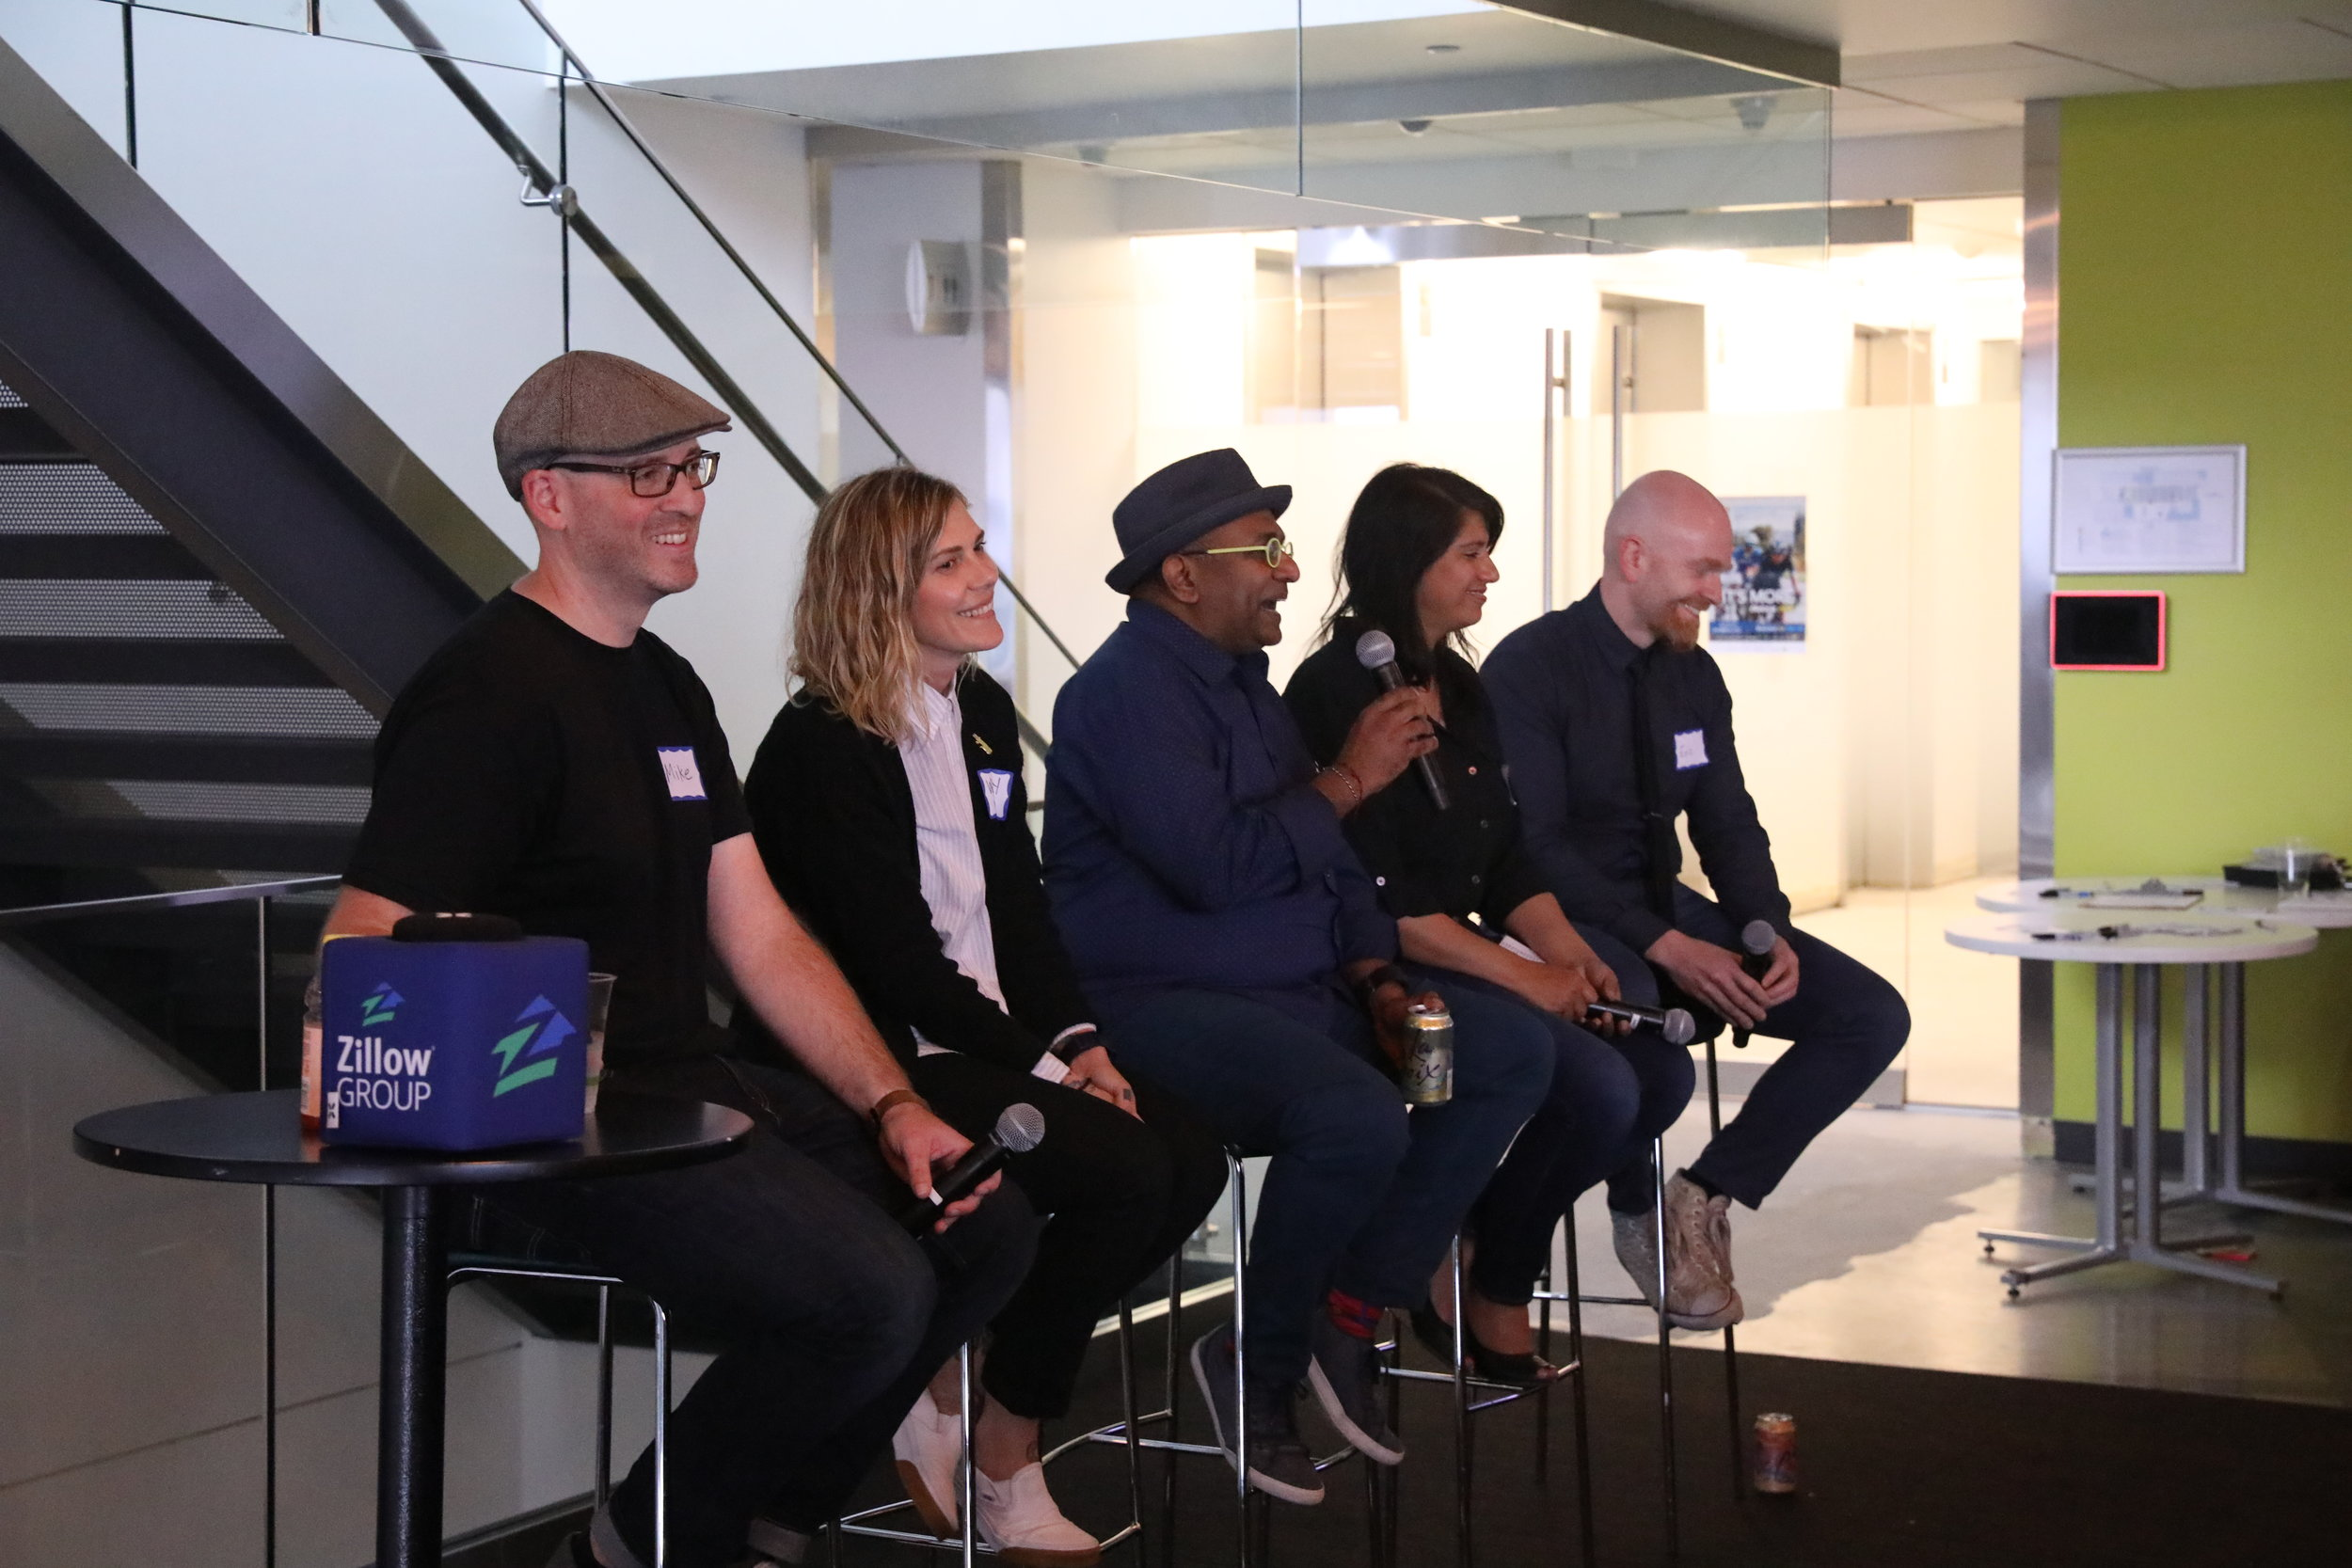 Panelists speaking at Zillow on implementing design processes in changing culture.